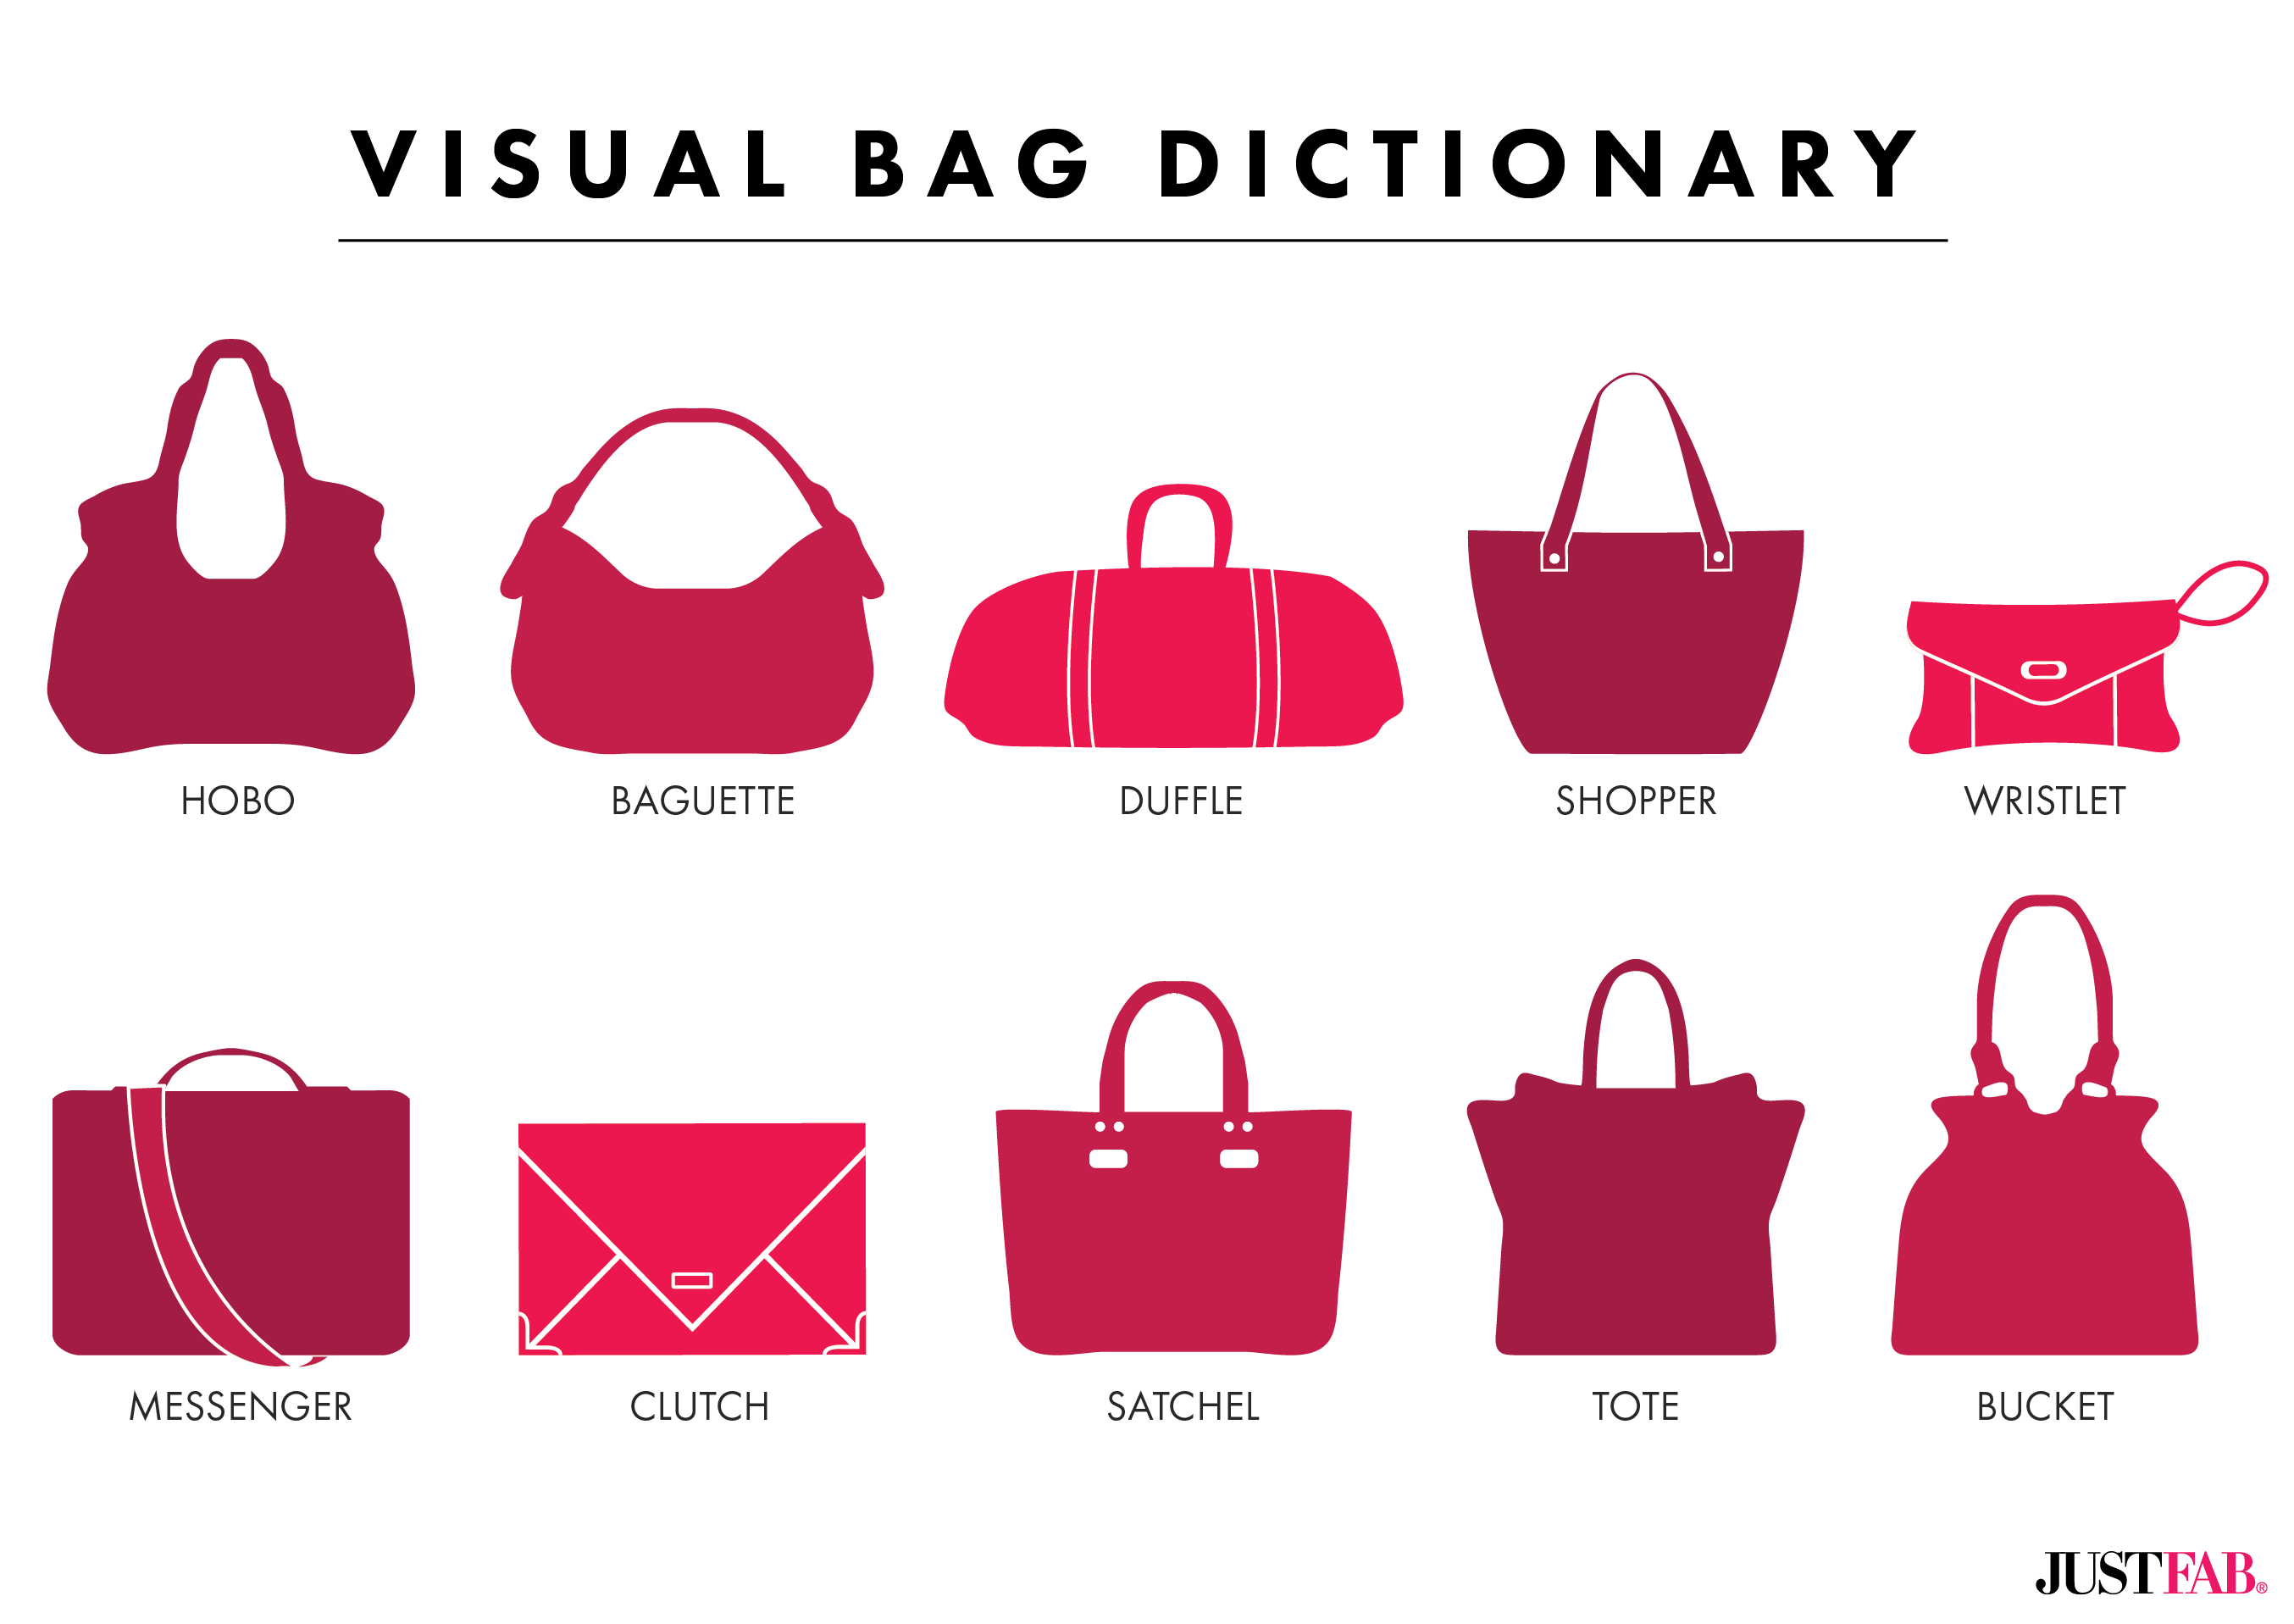 medium resolution of must know handbag terminology memorize keep it handy for the next time you